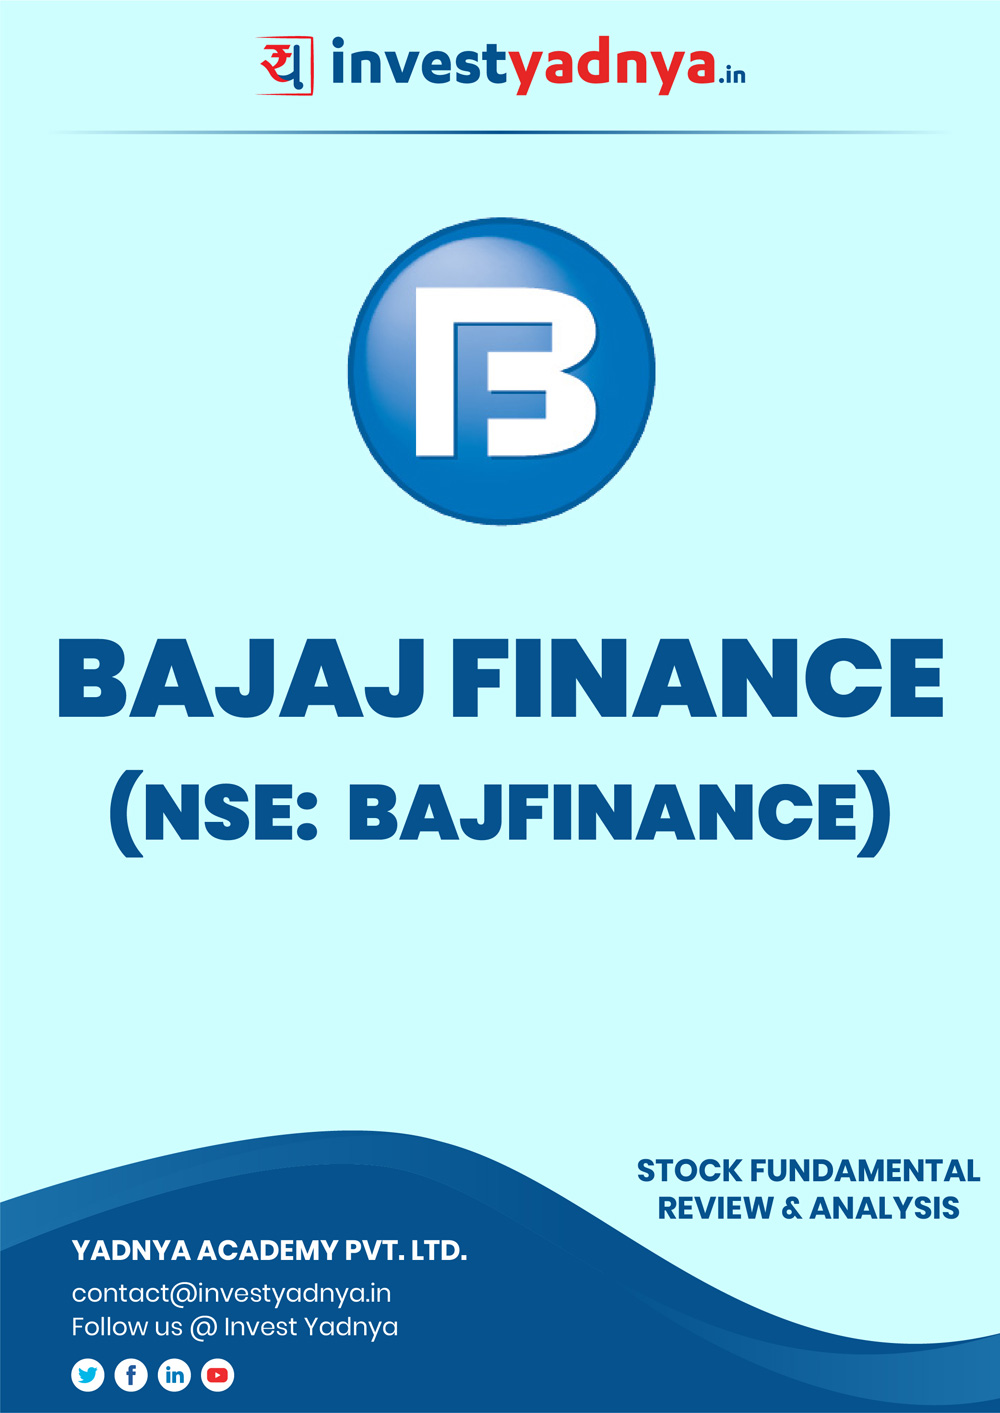 This e-book offers an in-depth stock review of Bajaj Finance Ltd, considering both Financial and Equity Research Parameters. It reviews the company, industry, competitors, financials, etc. ✔ Detailed Stock Analysis ✔ Latest Research Reports